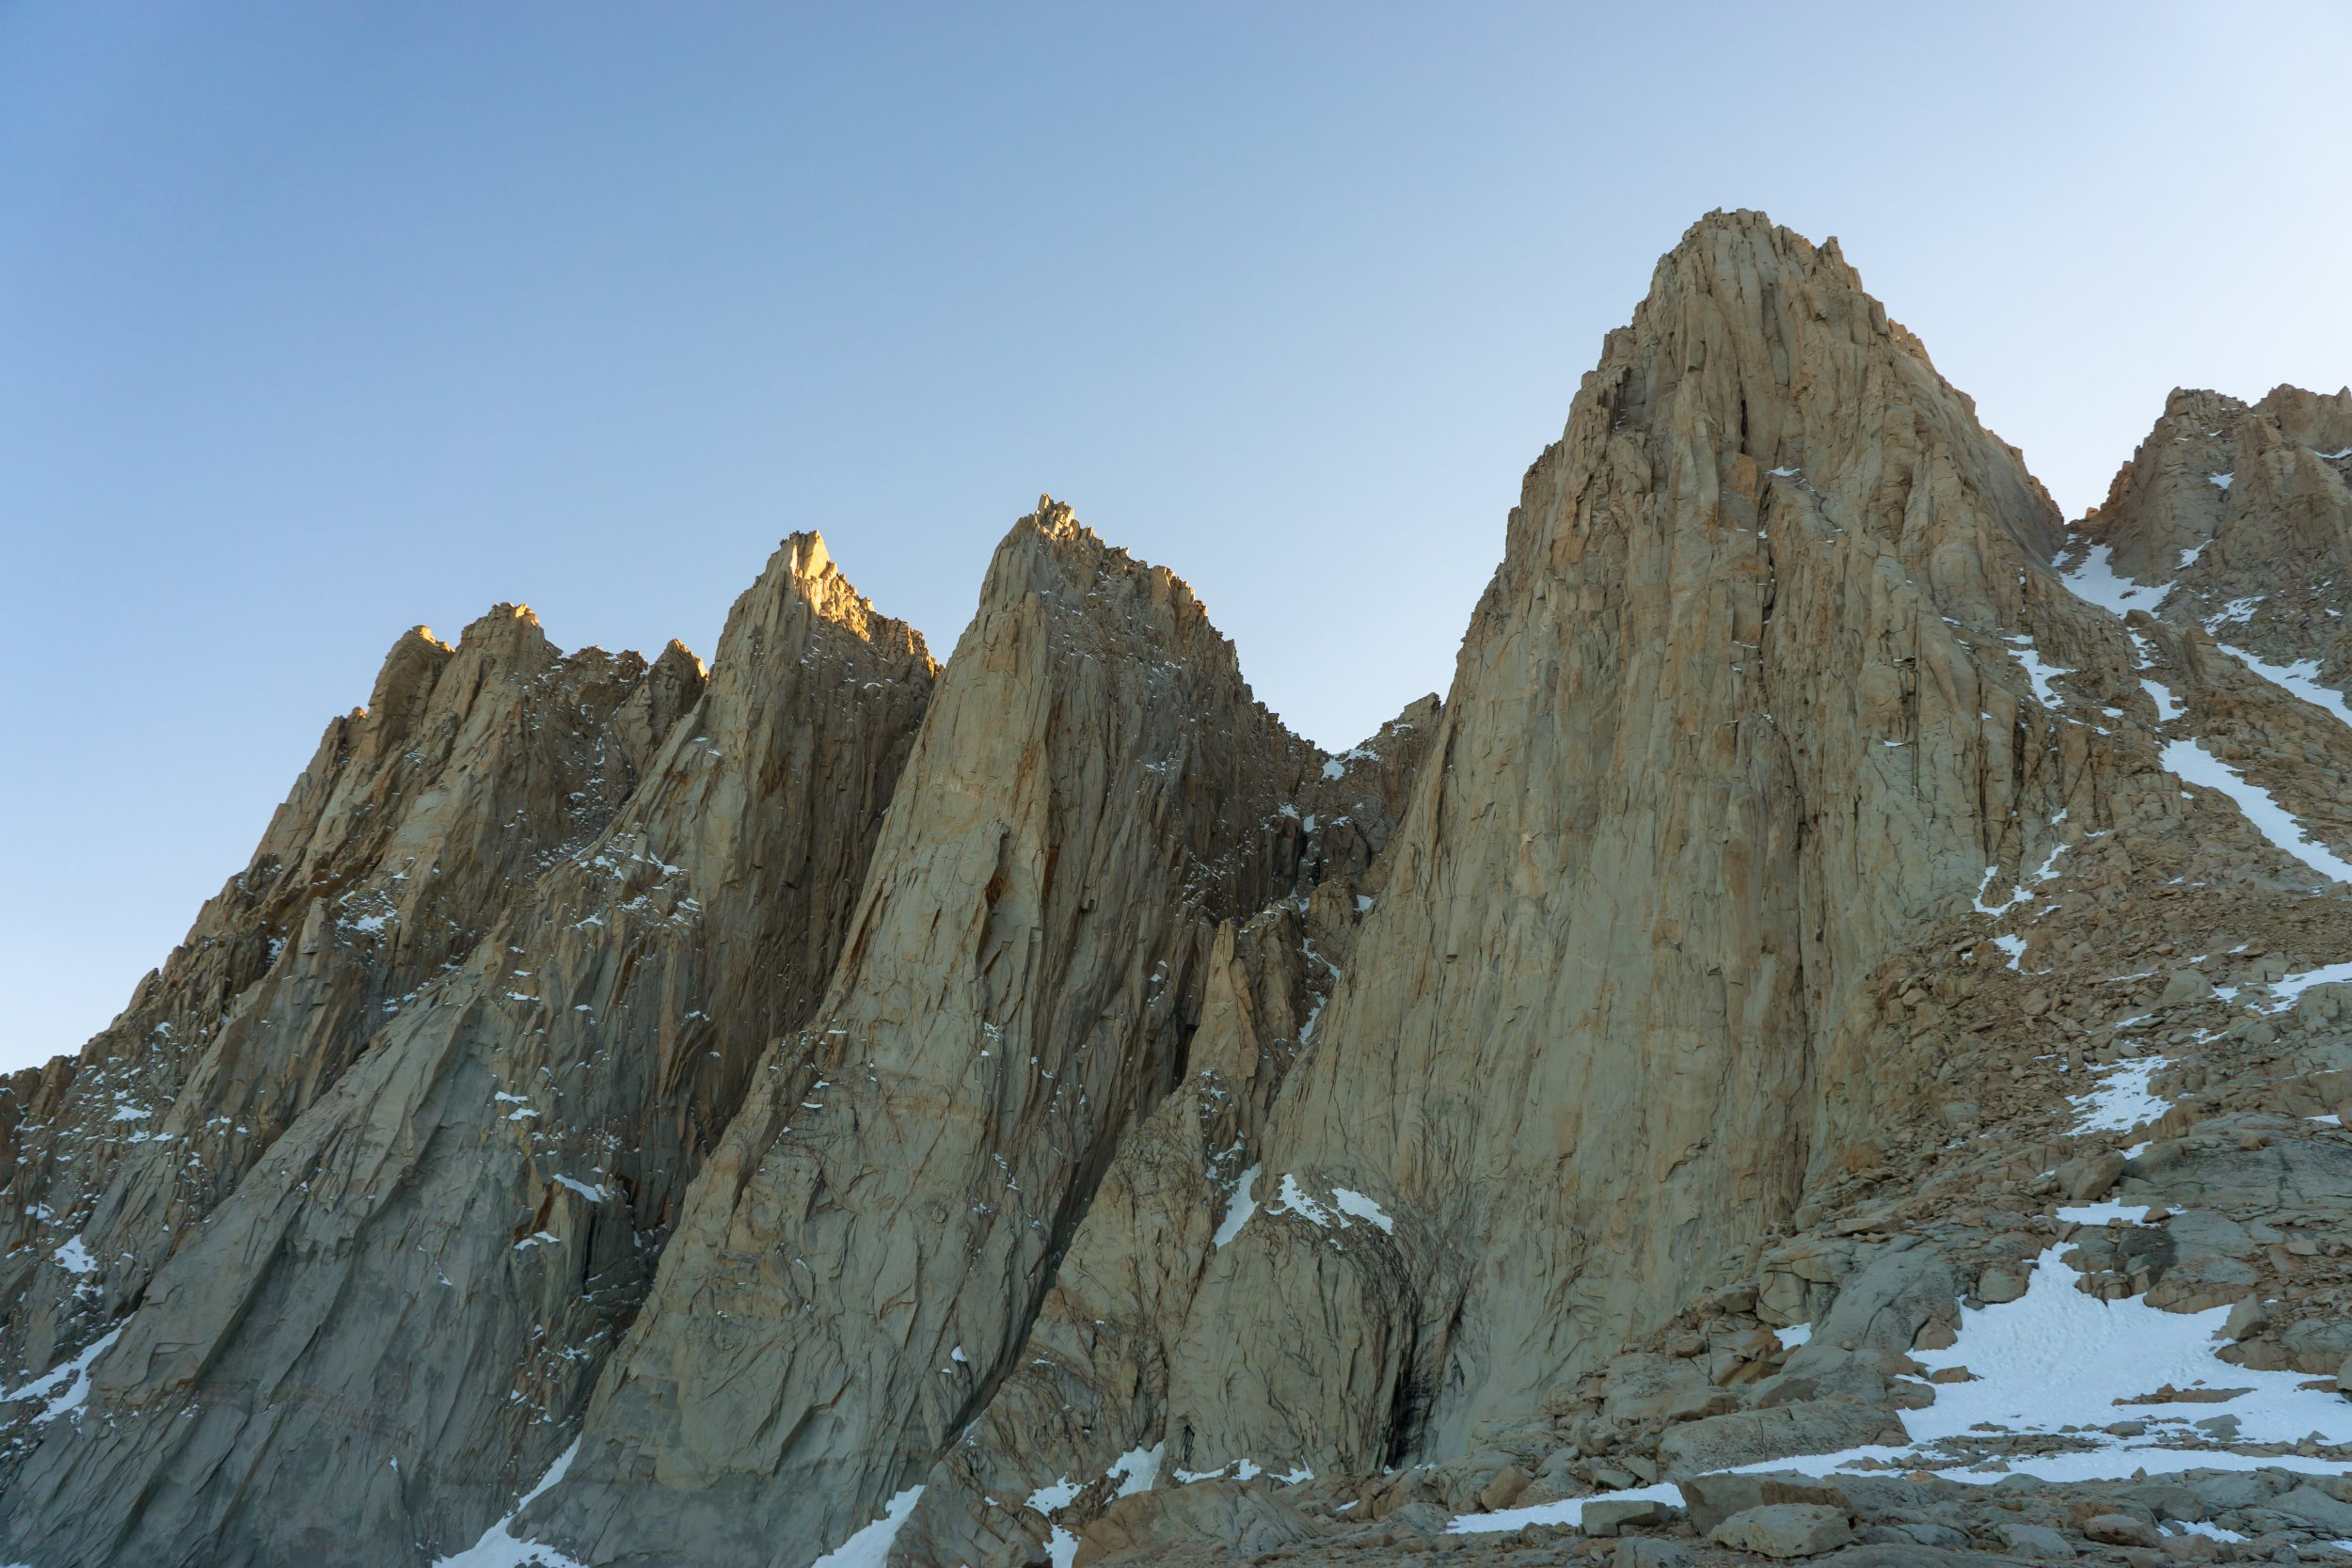 The pinnacles and needles are just amazing to witness!